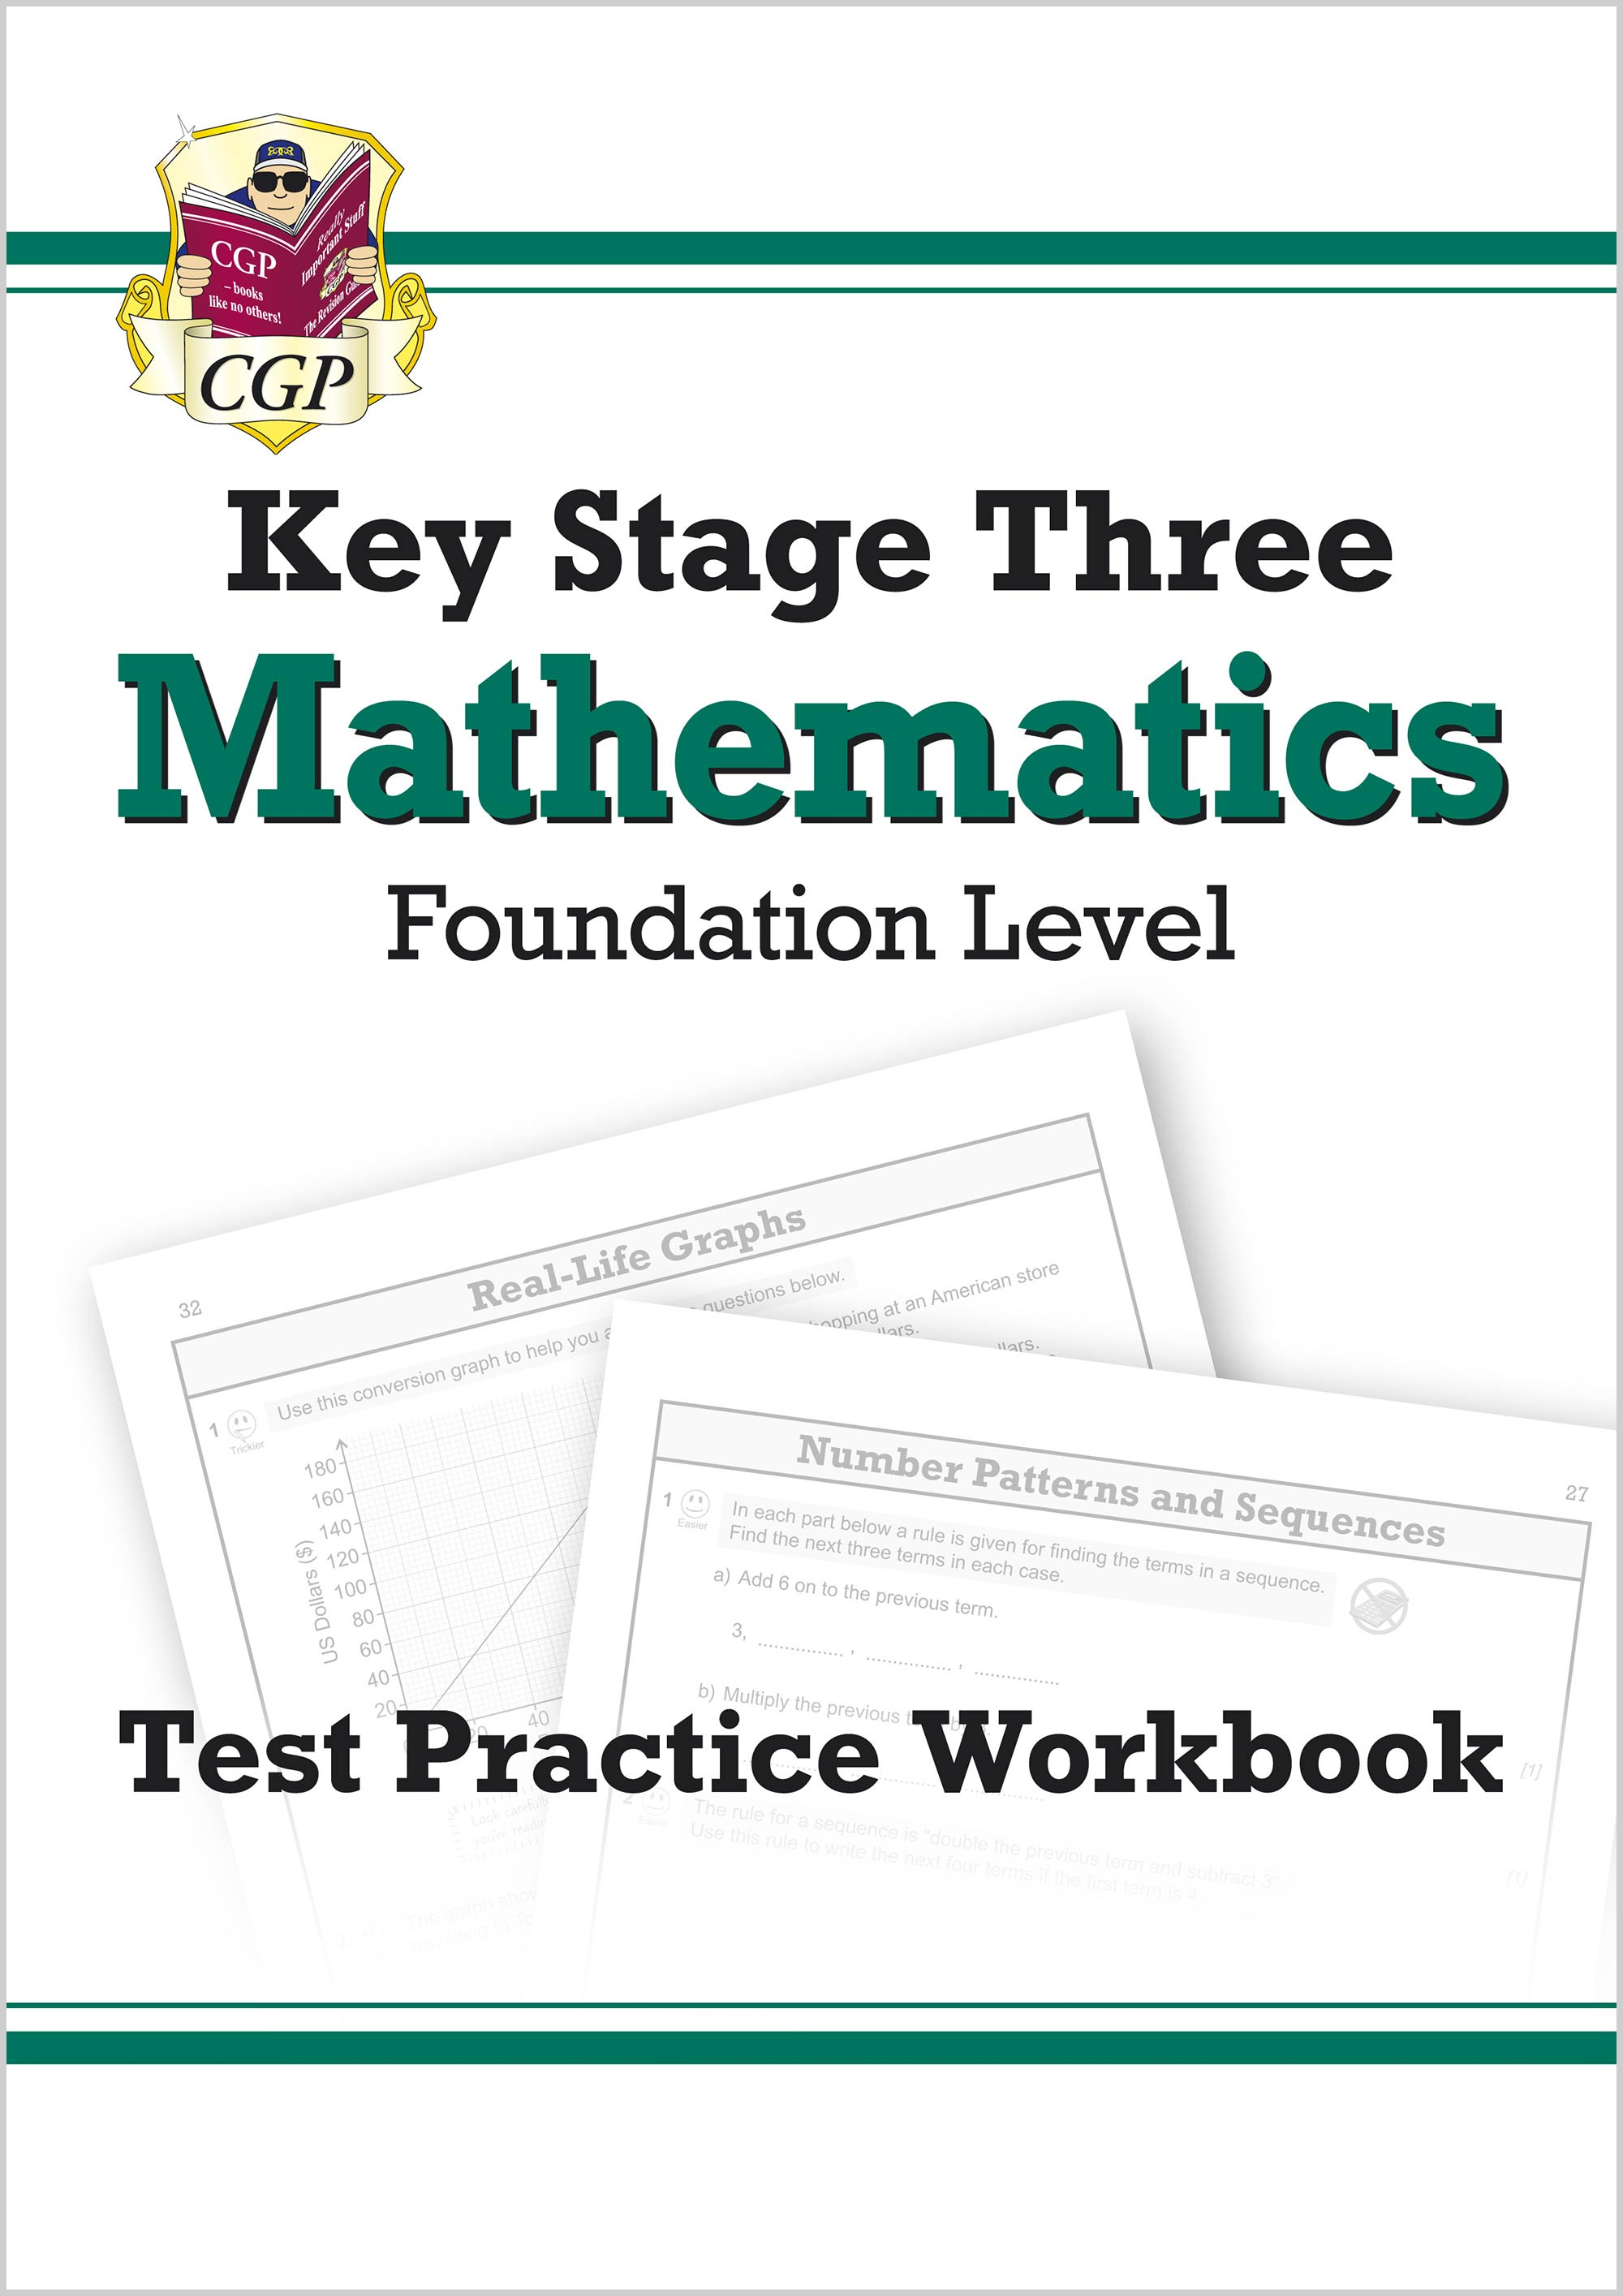 MFQ32 - KS3 Maths Test Practice Workbook - Foundation